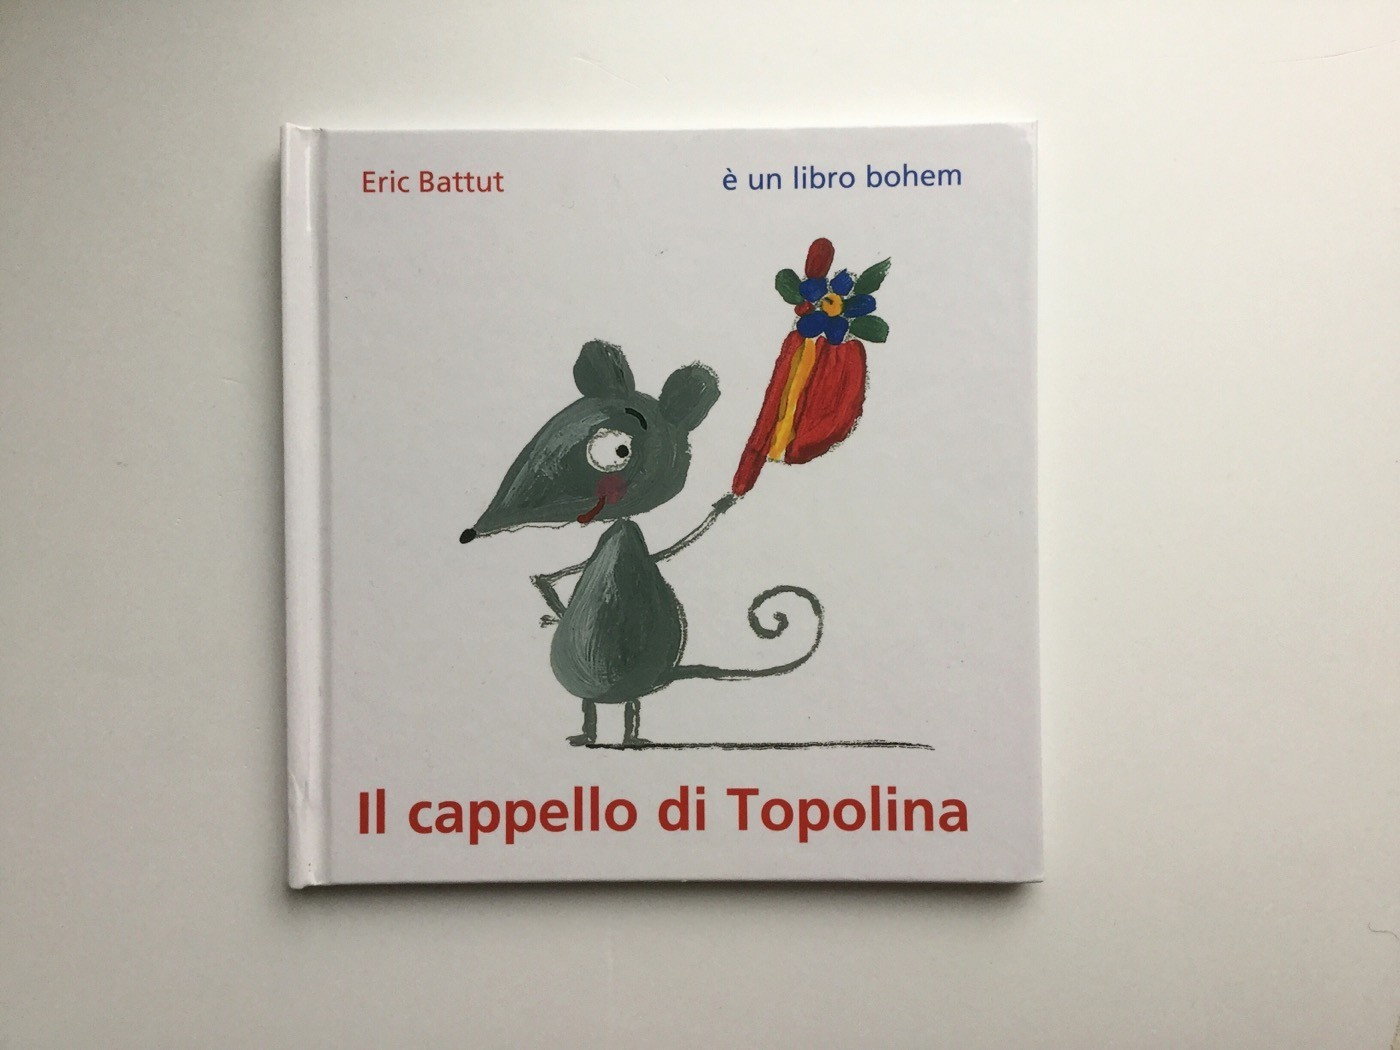 Il cappello di Topolina - Eric Battut - Bohem Press